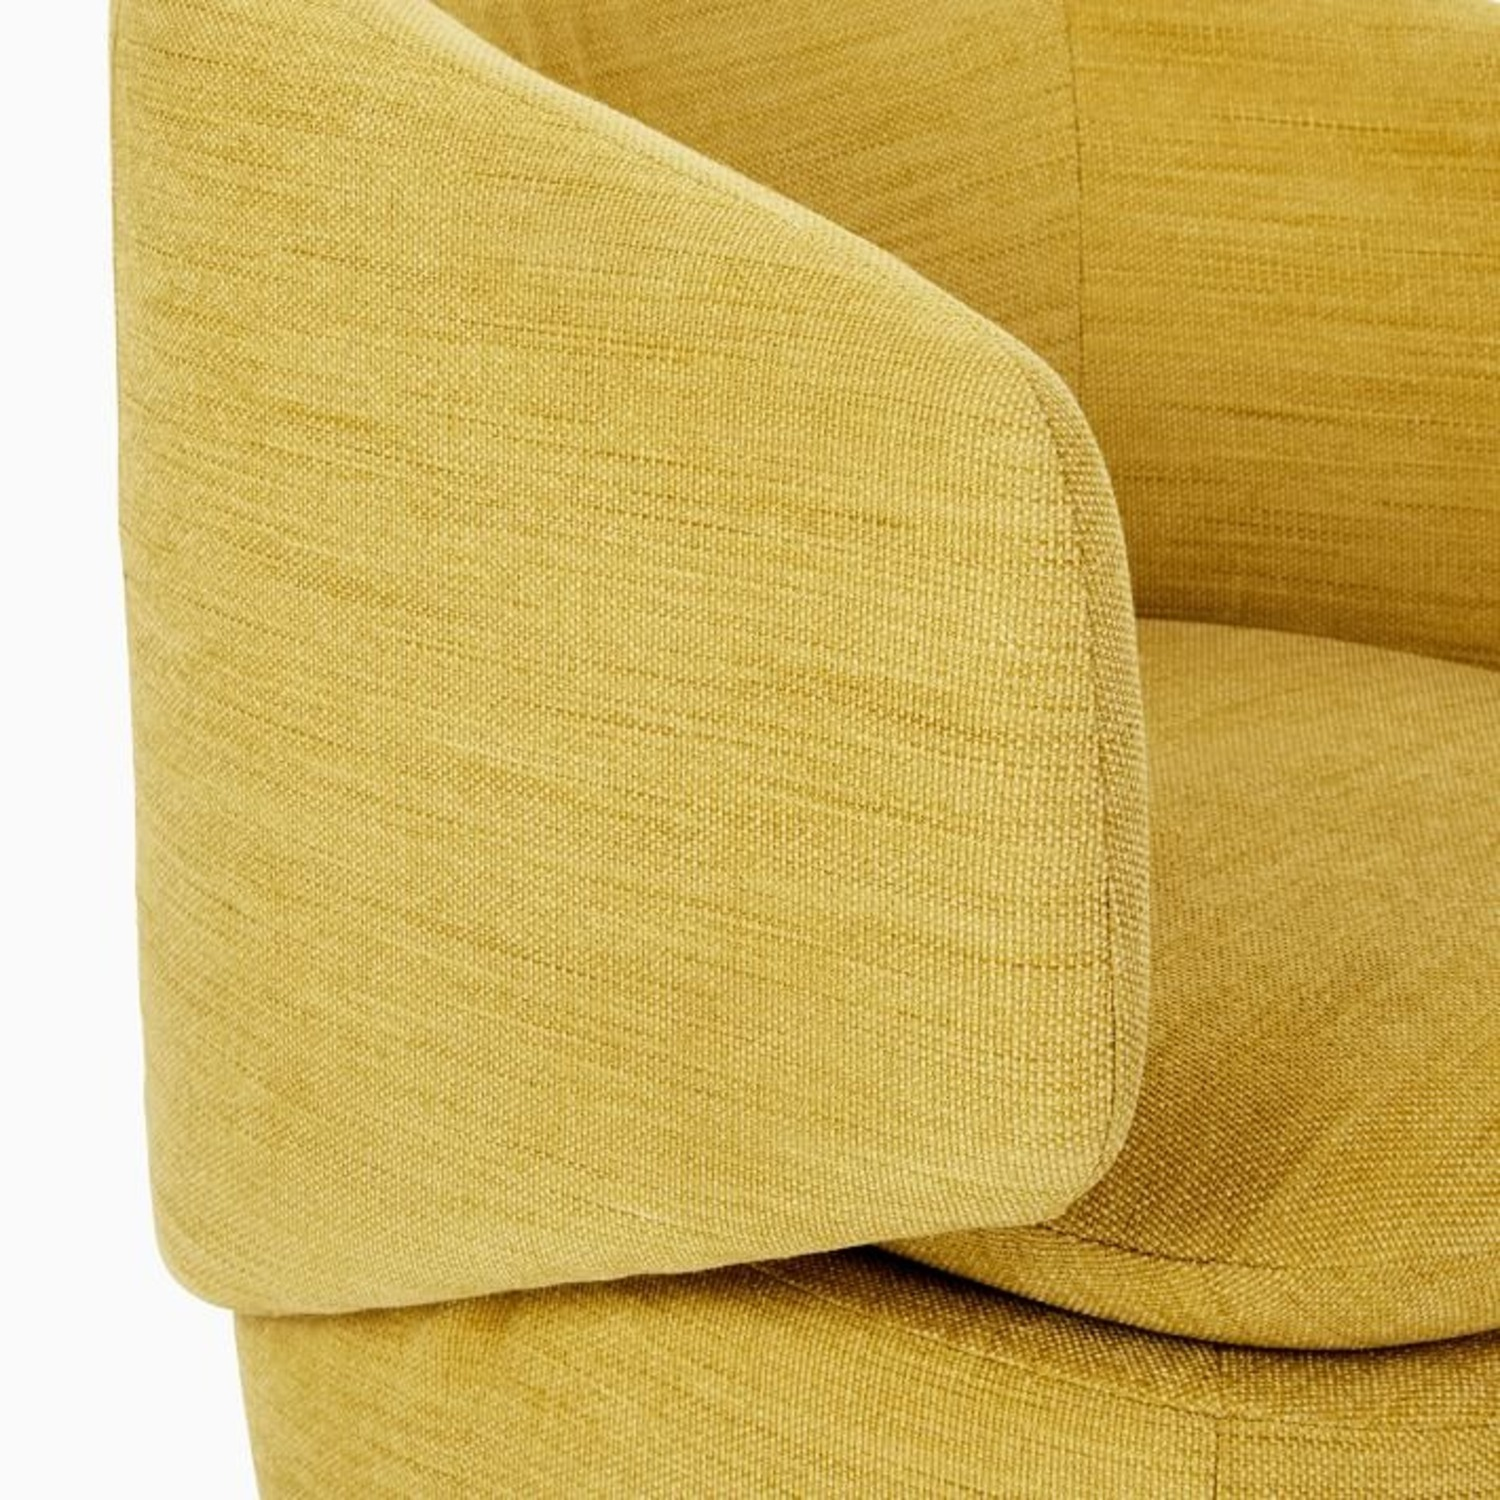 West Elm Crescent Swivel Chair - image-1